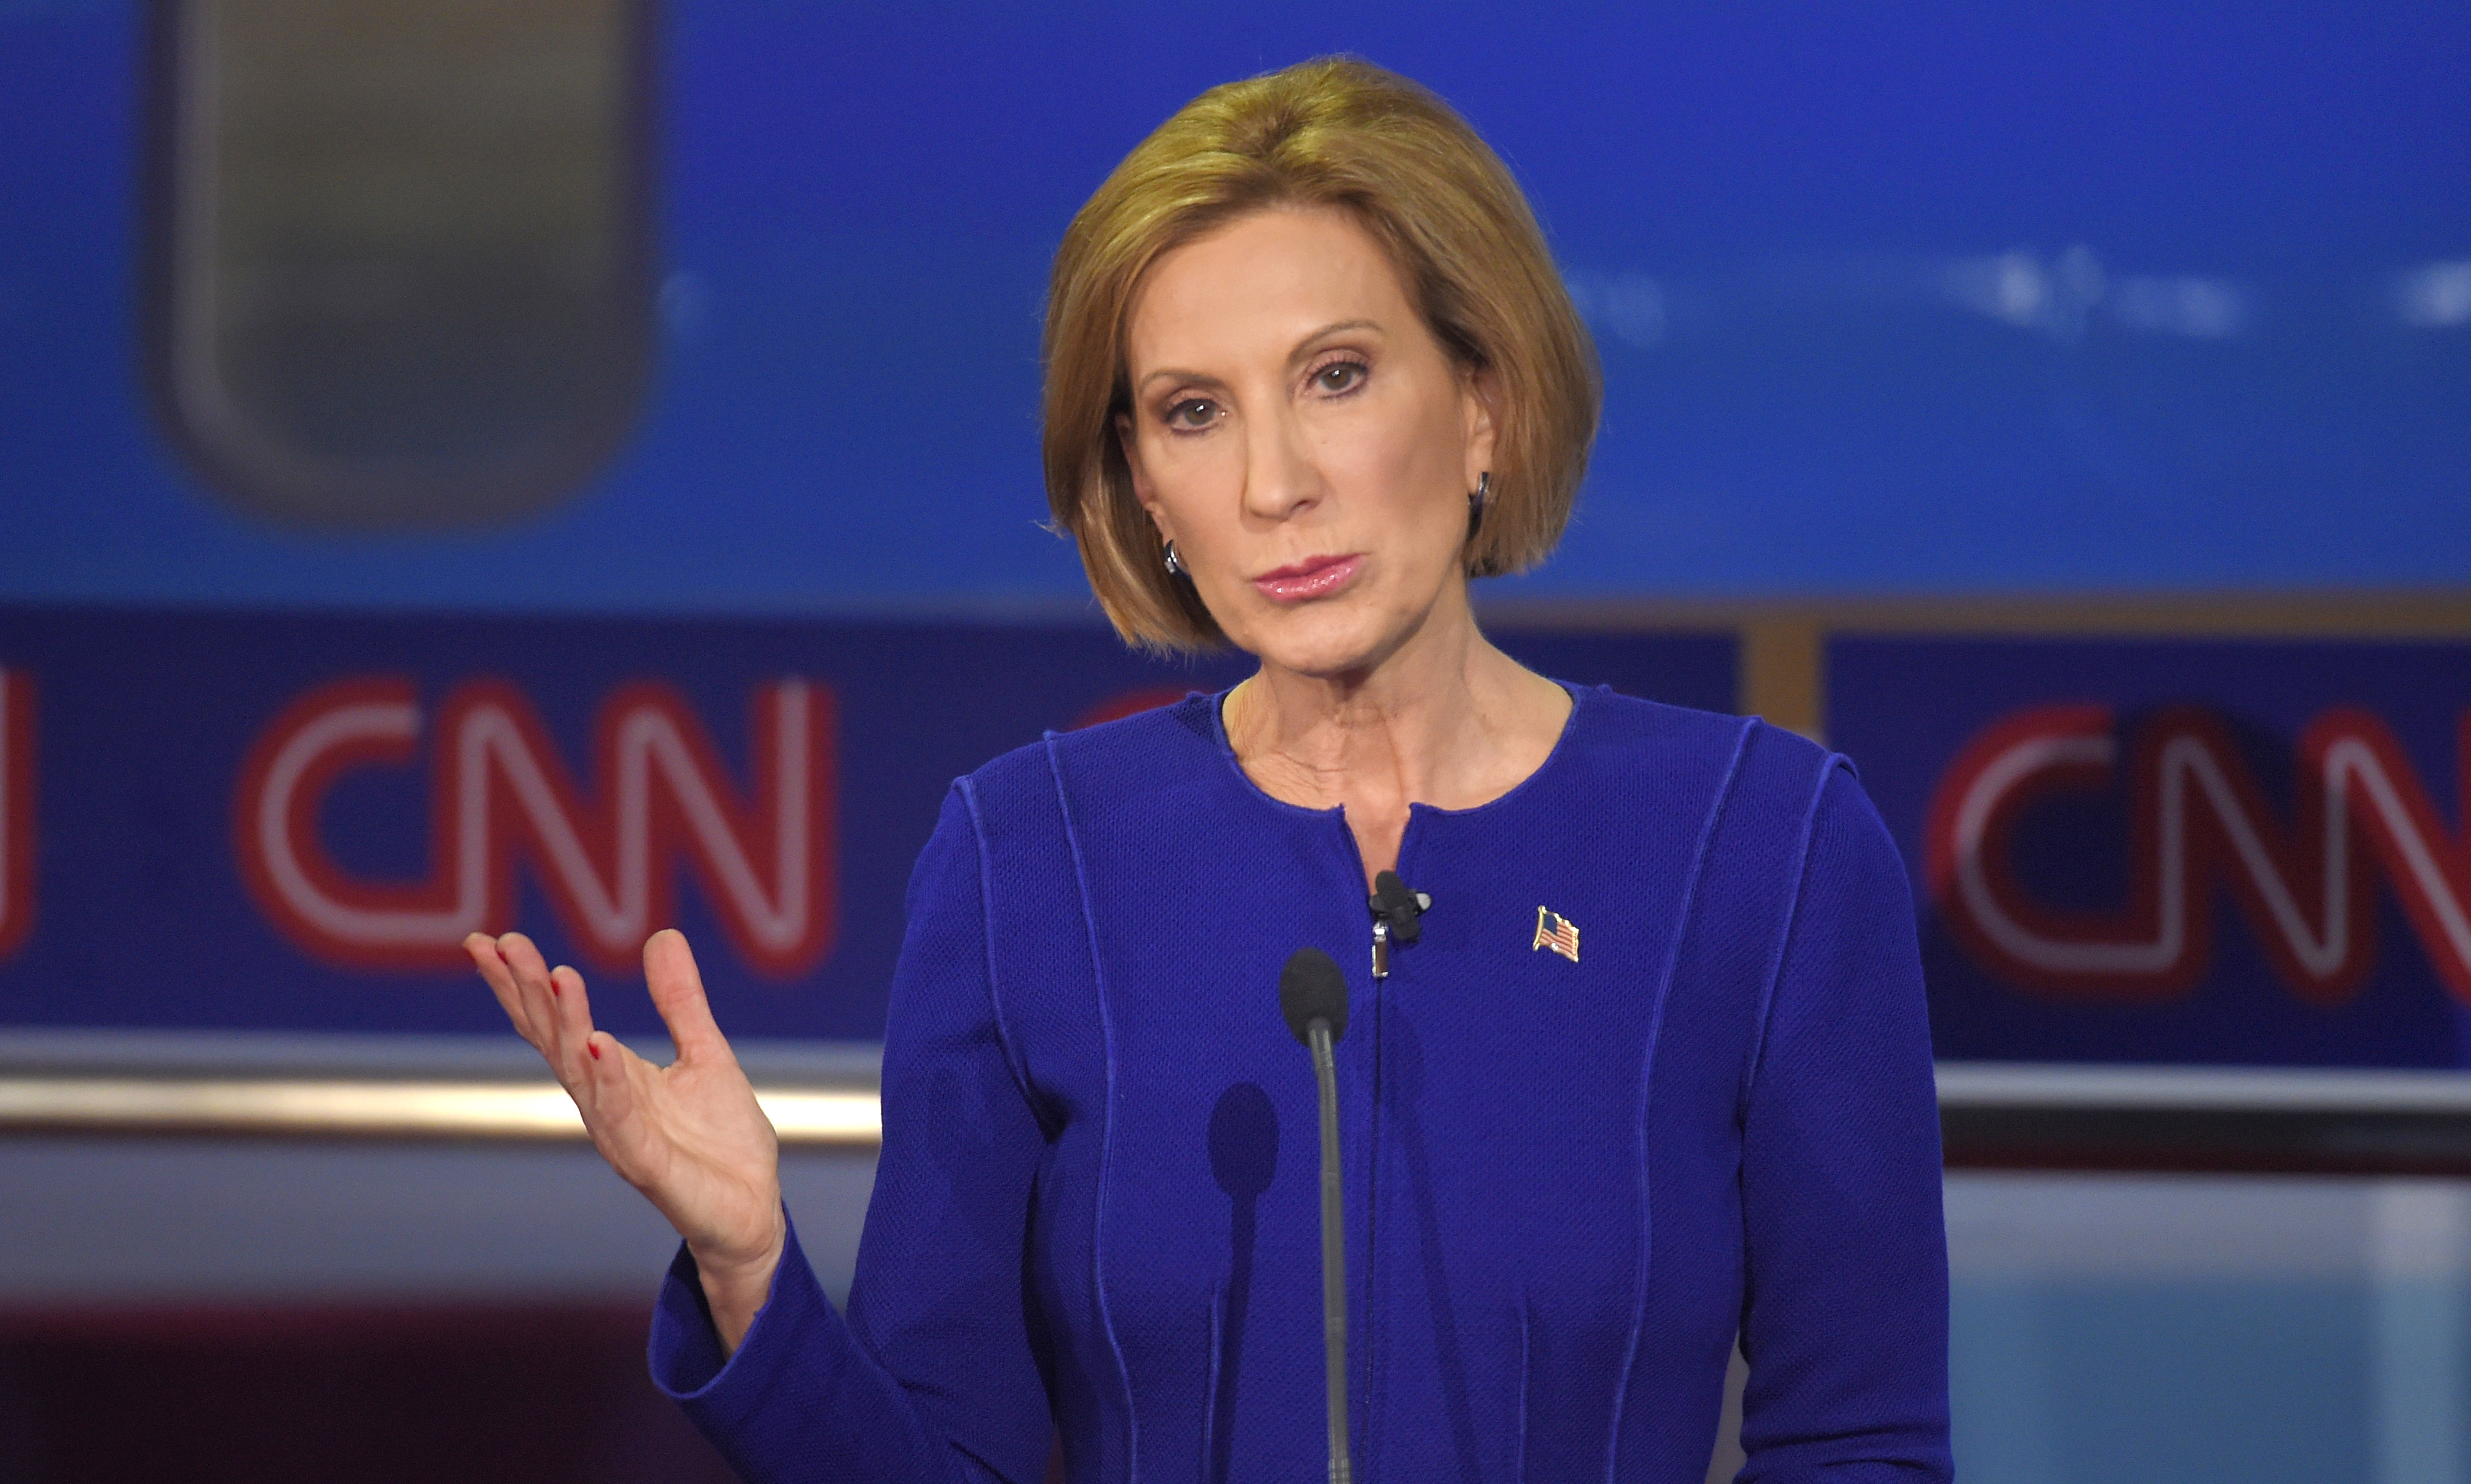 Report: Carly Fiorina heckled by woman dressed as birth control pills